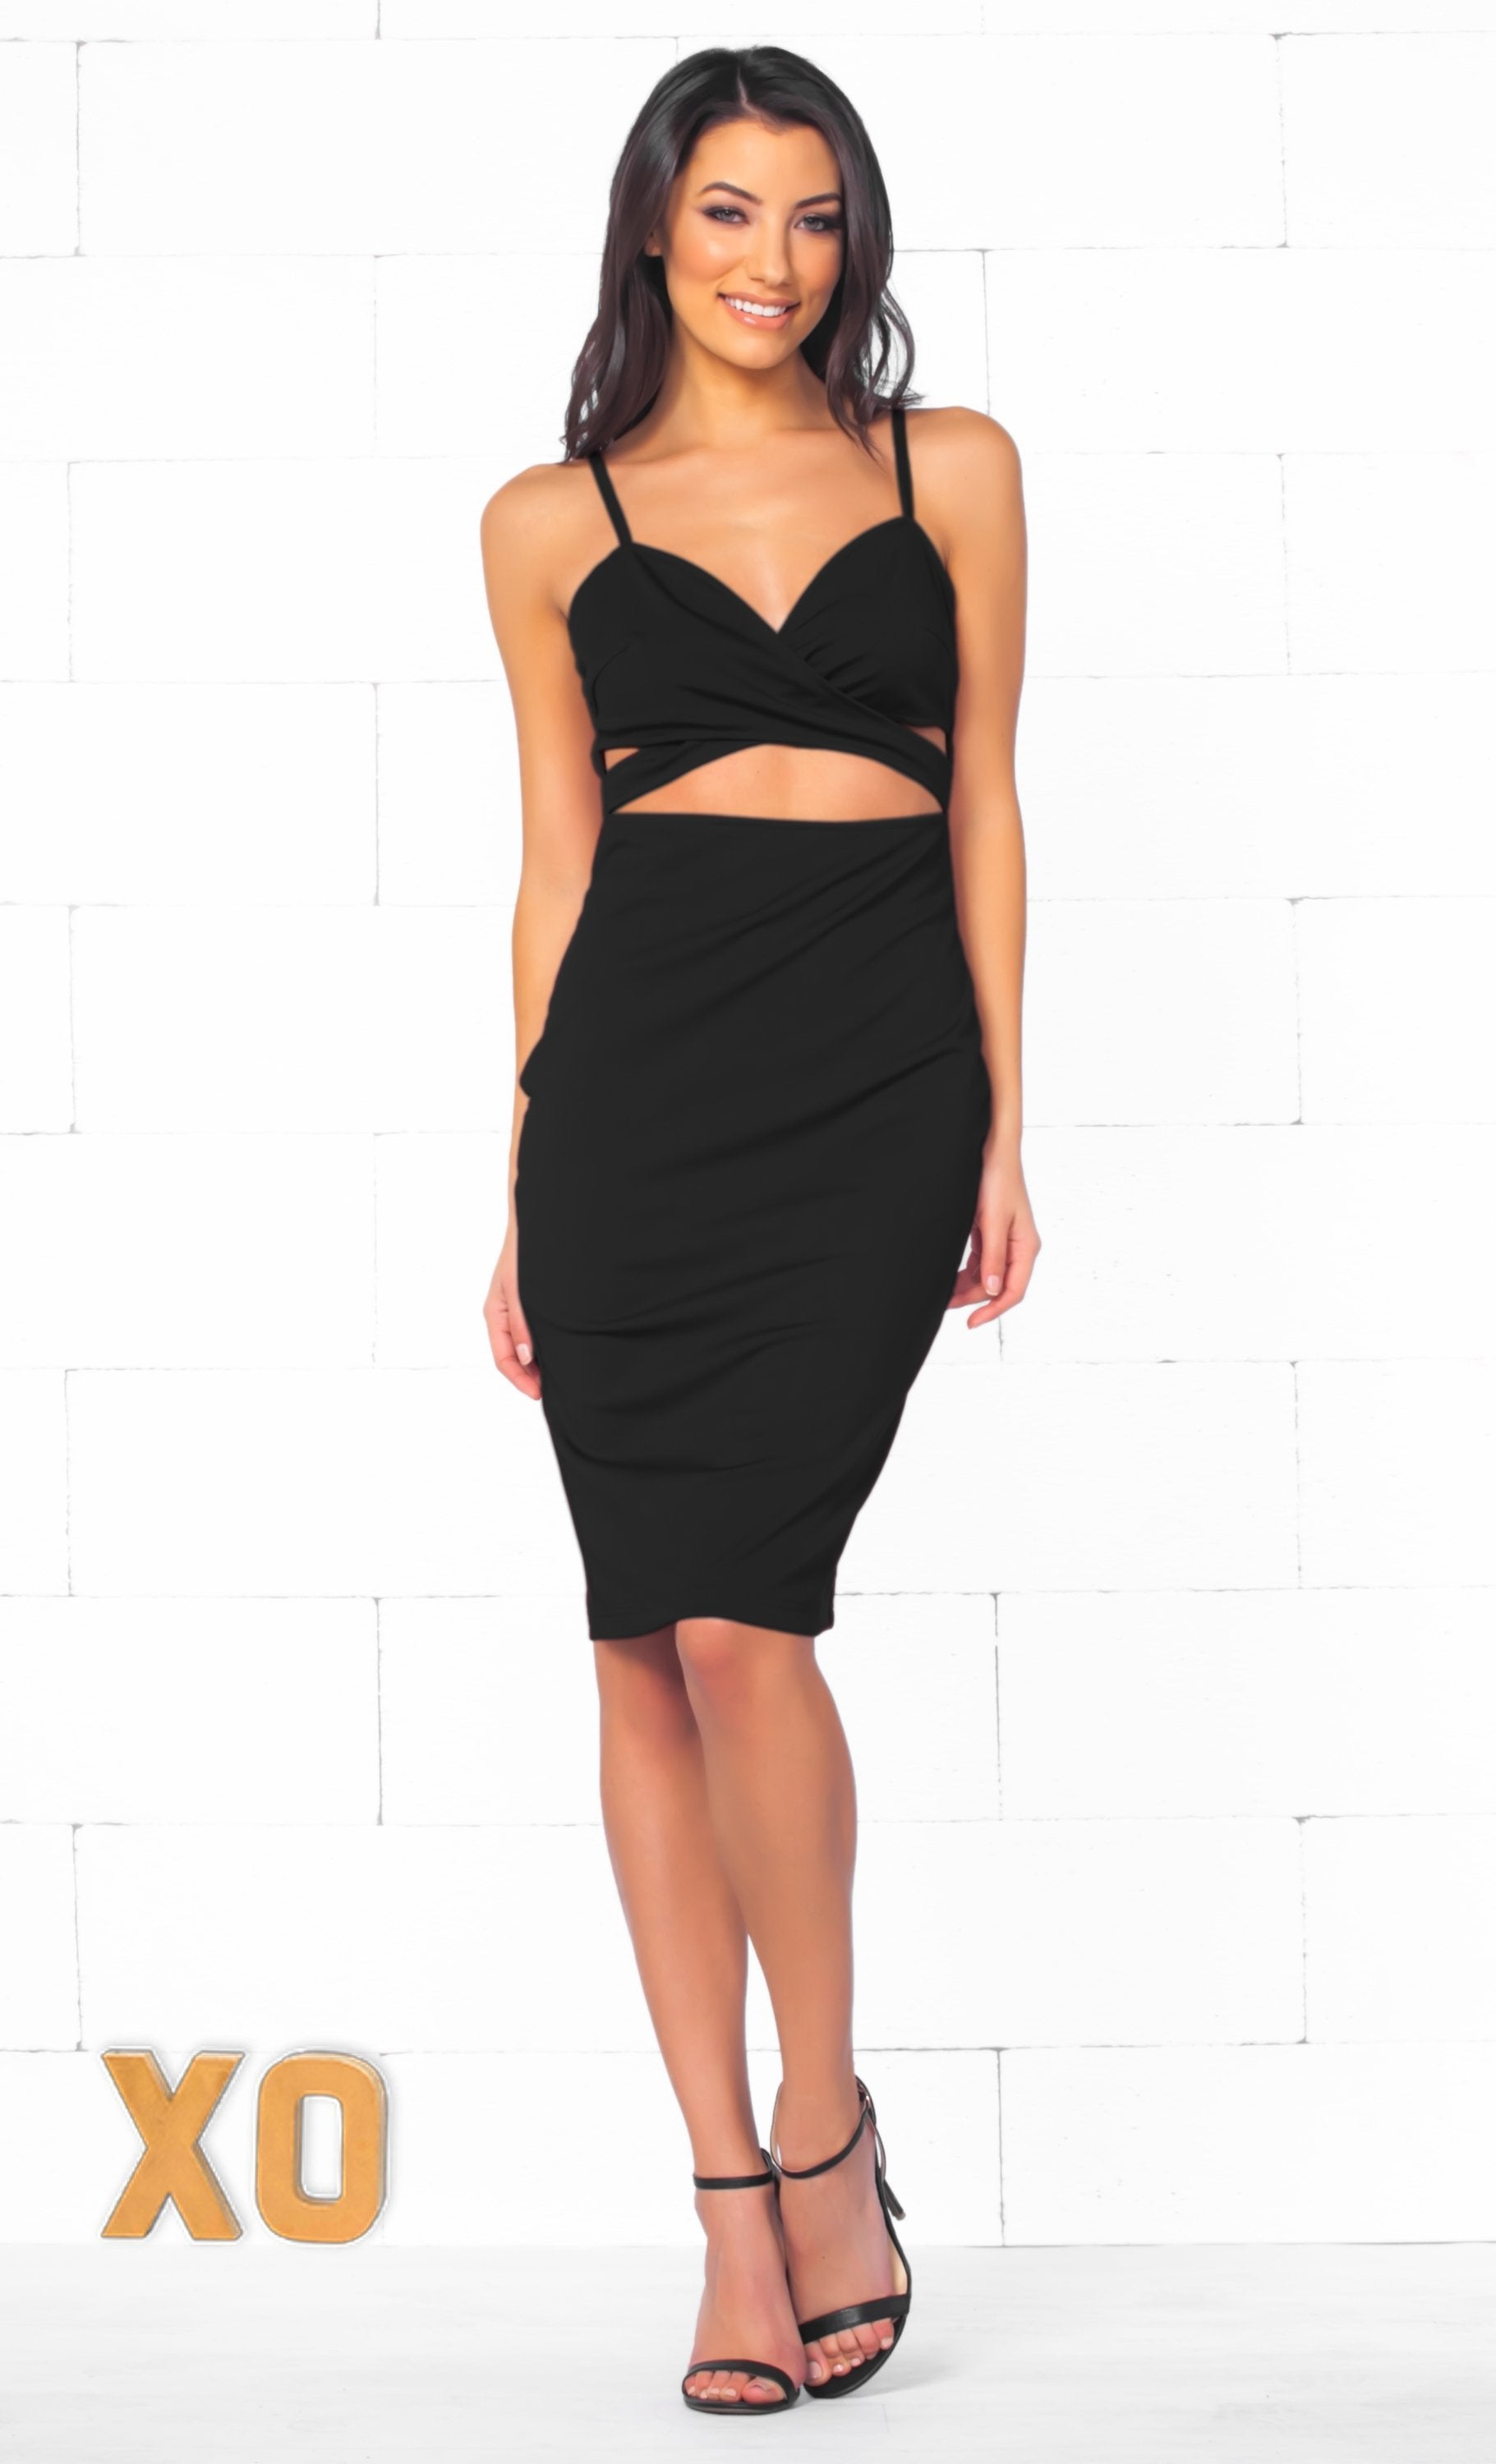 Indie XO Total Bombshell Black Spaghetti Strap V Neck Cut Out Bodycon Midi Dress - Just Ours! - Sold Out